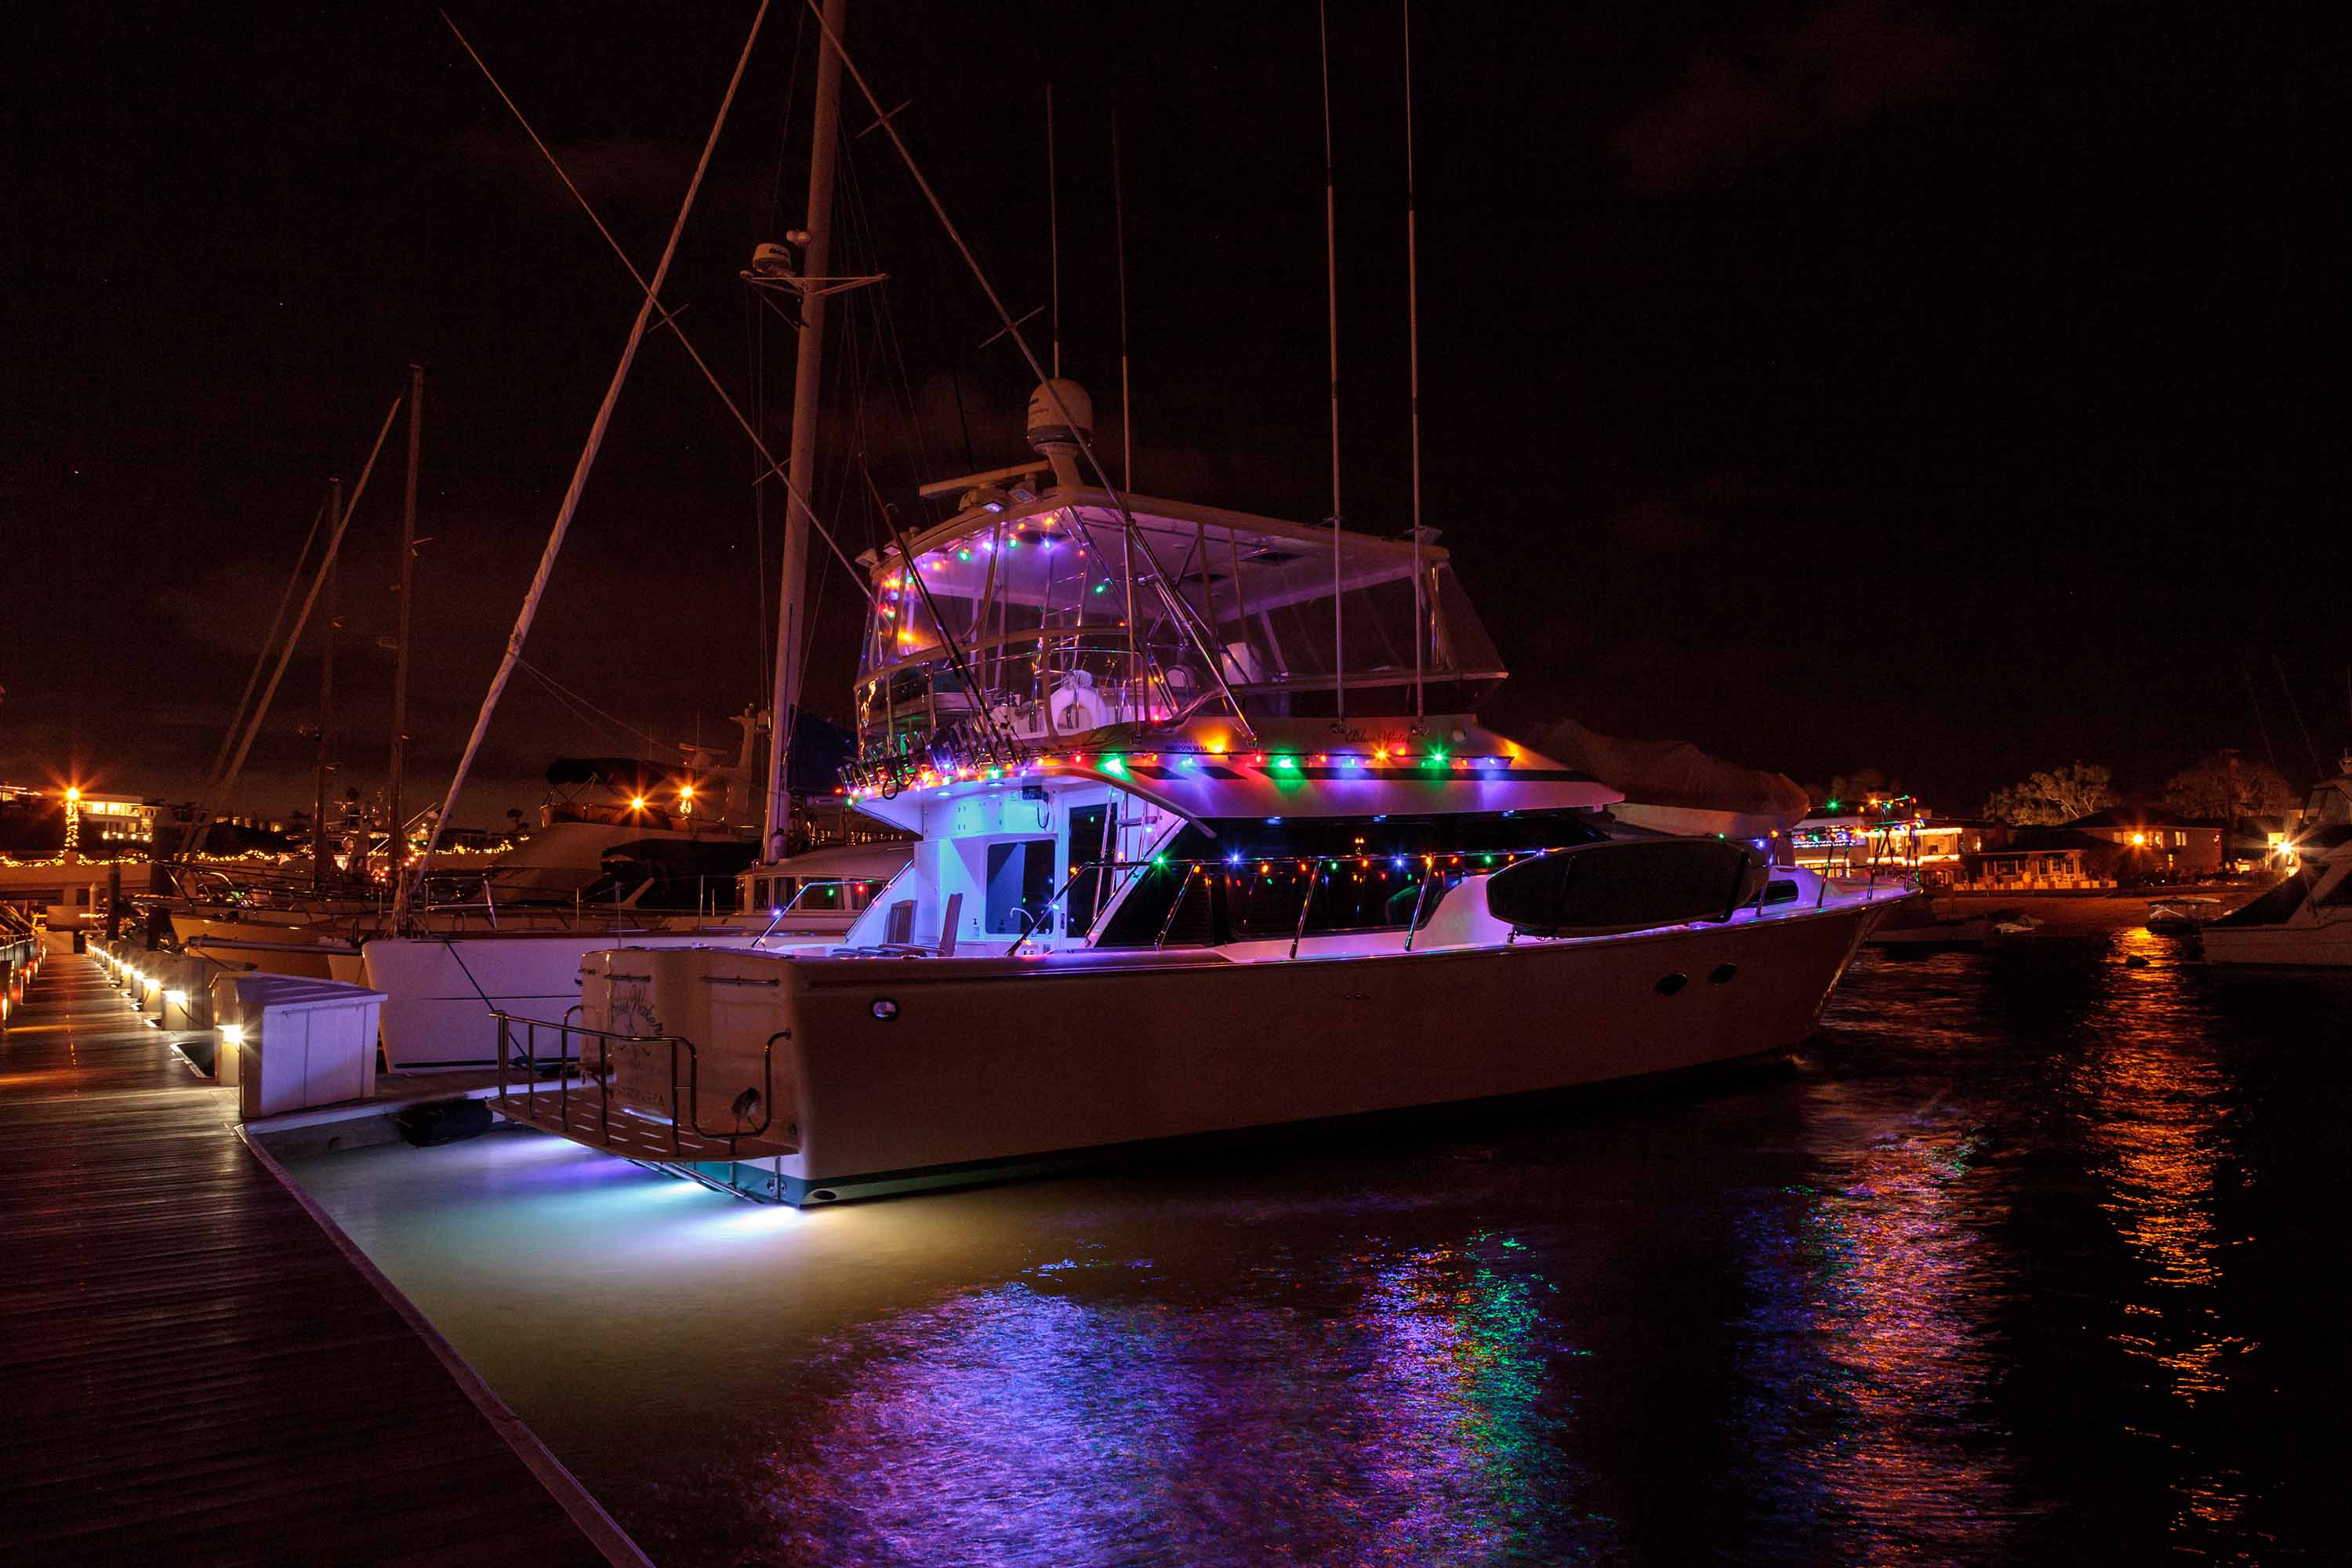 Boat decorated with holiday lights